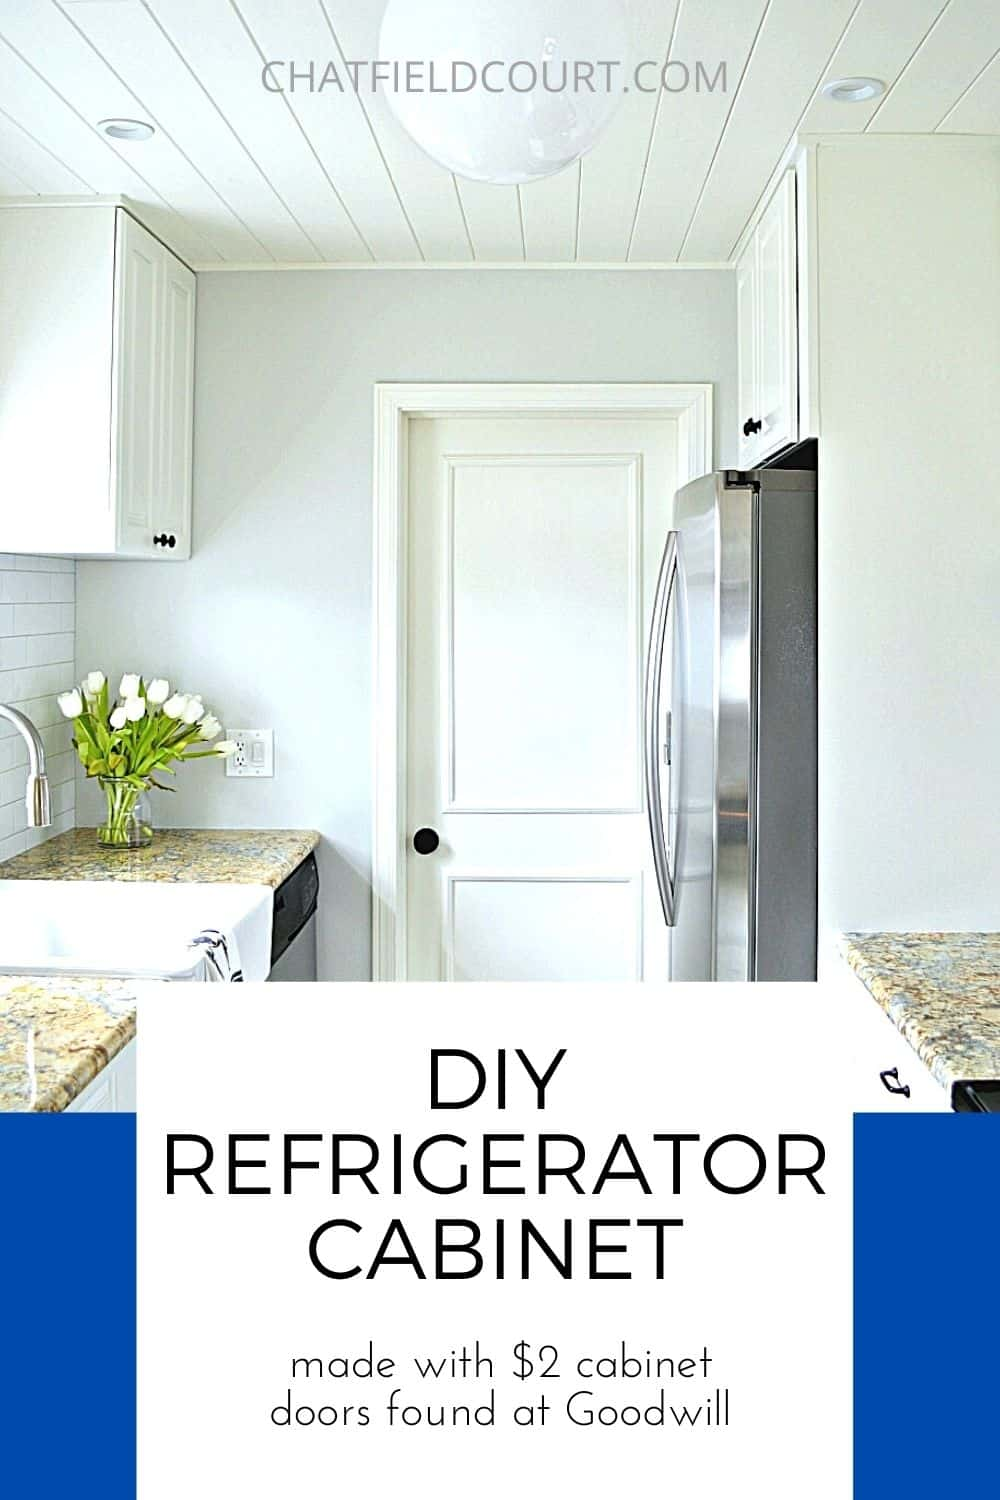 DIY refrigerator cabinet in a remodeled white kitchen